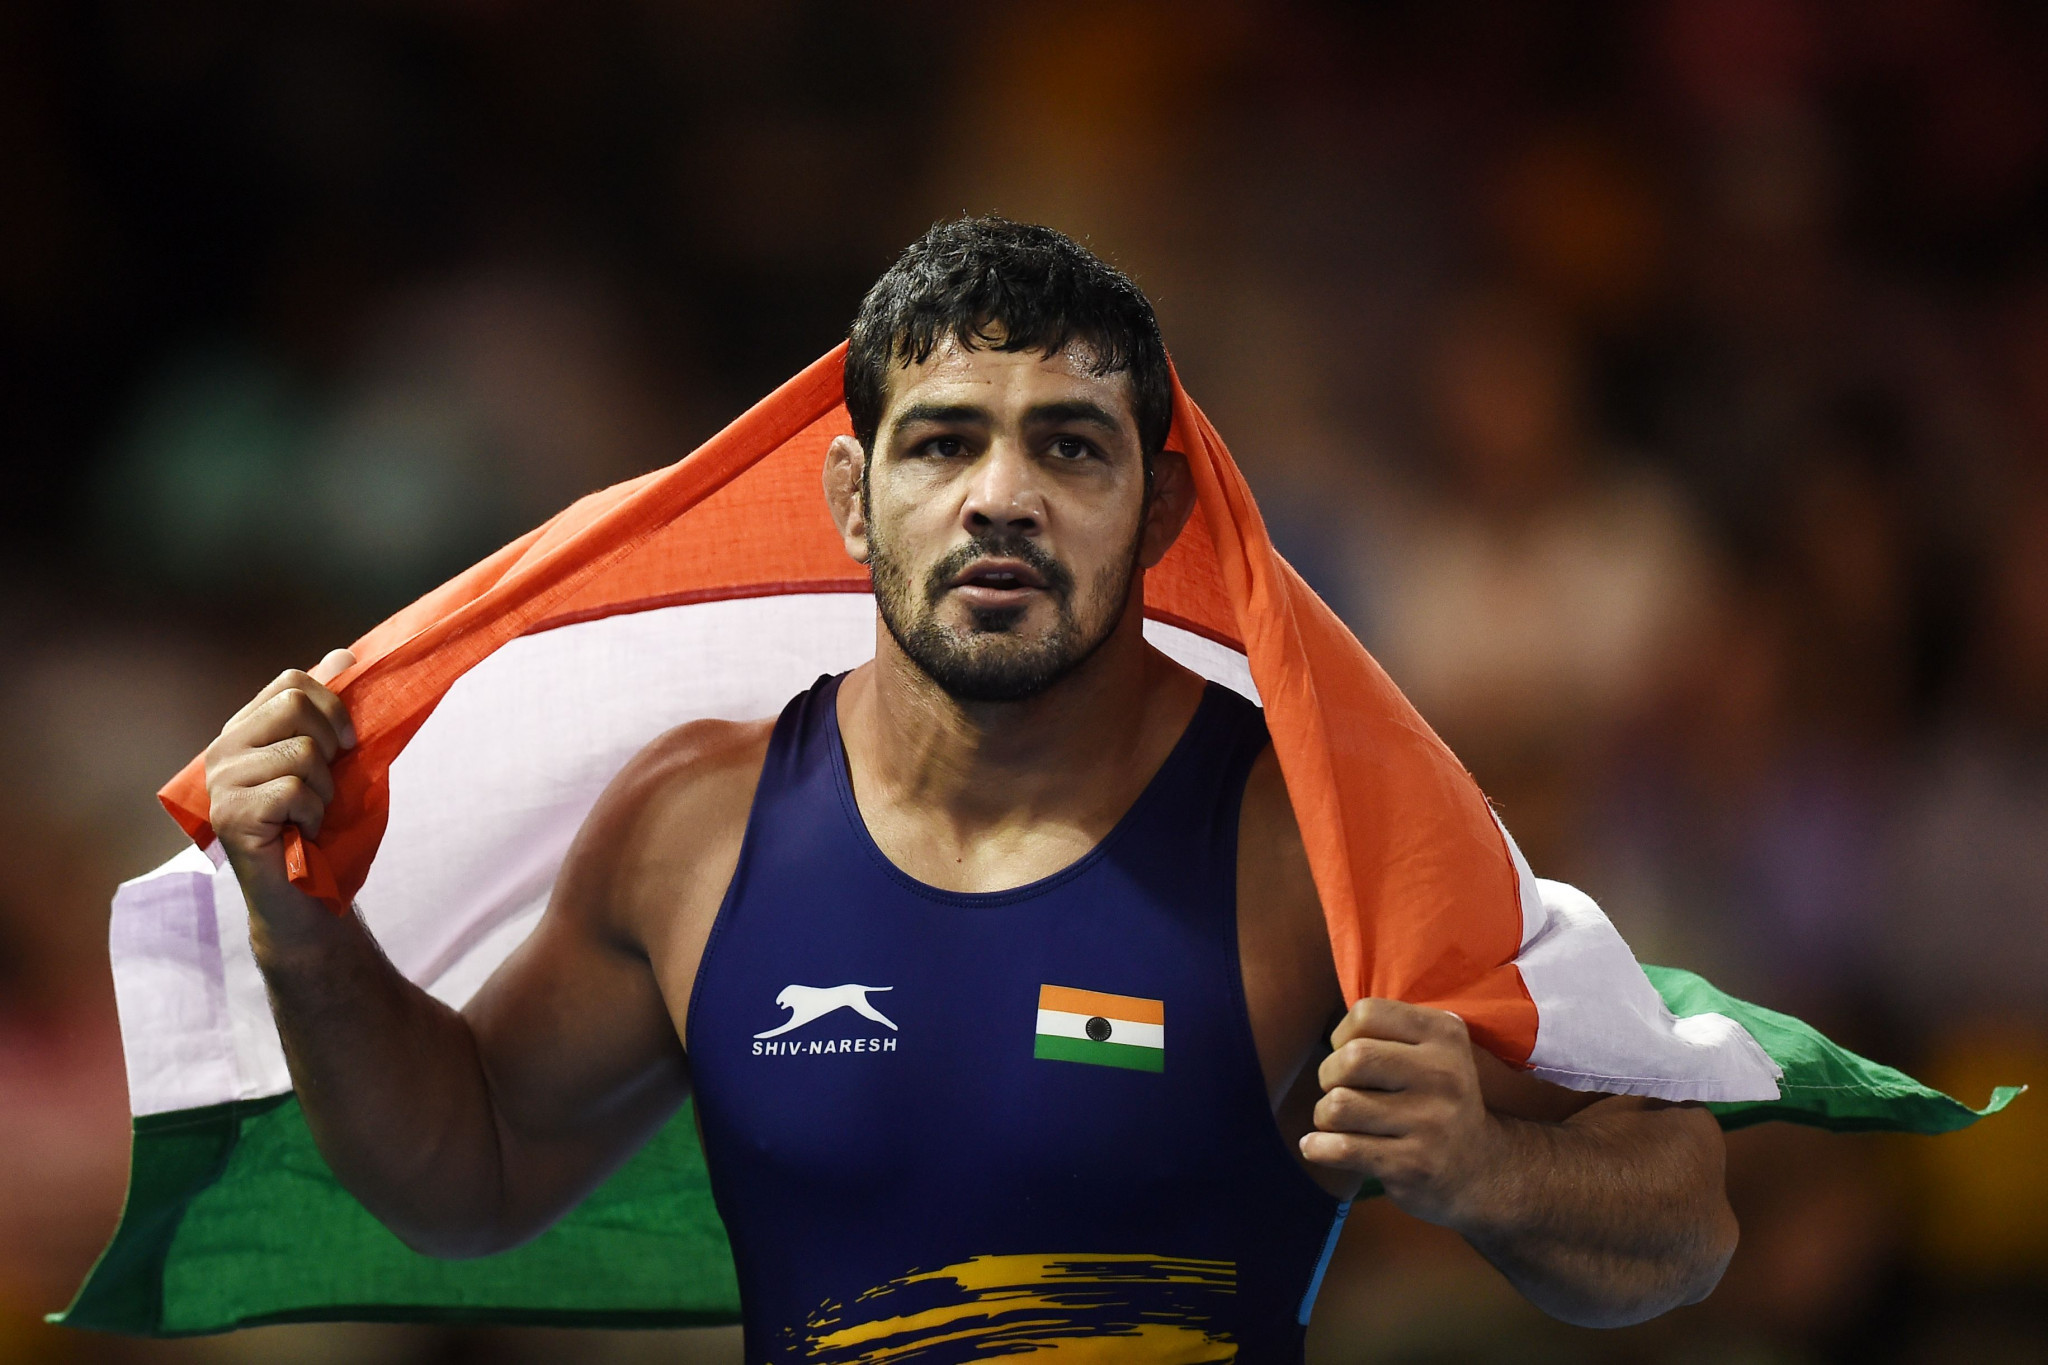 India's Sushil Kumar won the men's 74 kilograms wrestling event at Gold Coast 2018, securing the third Commonwealth Games gold medal of his career ©Getty Images